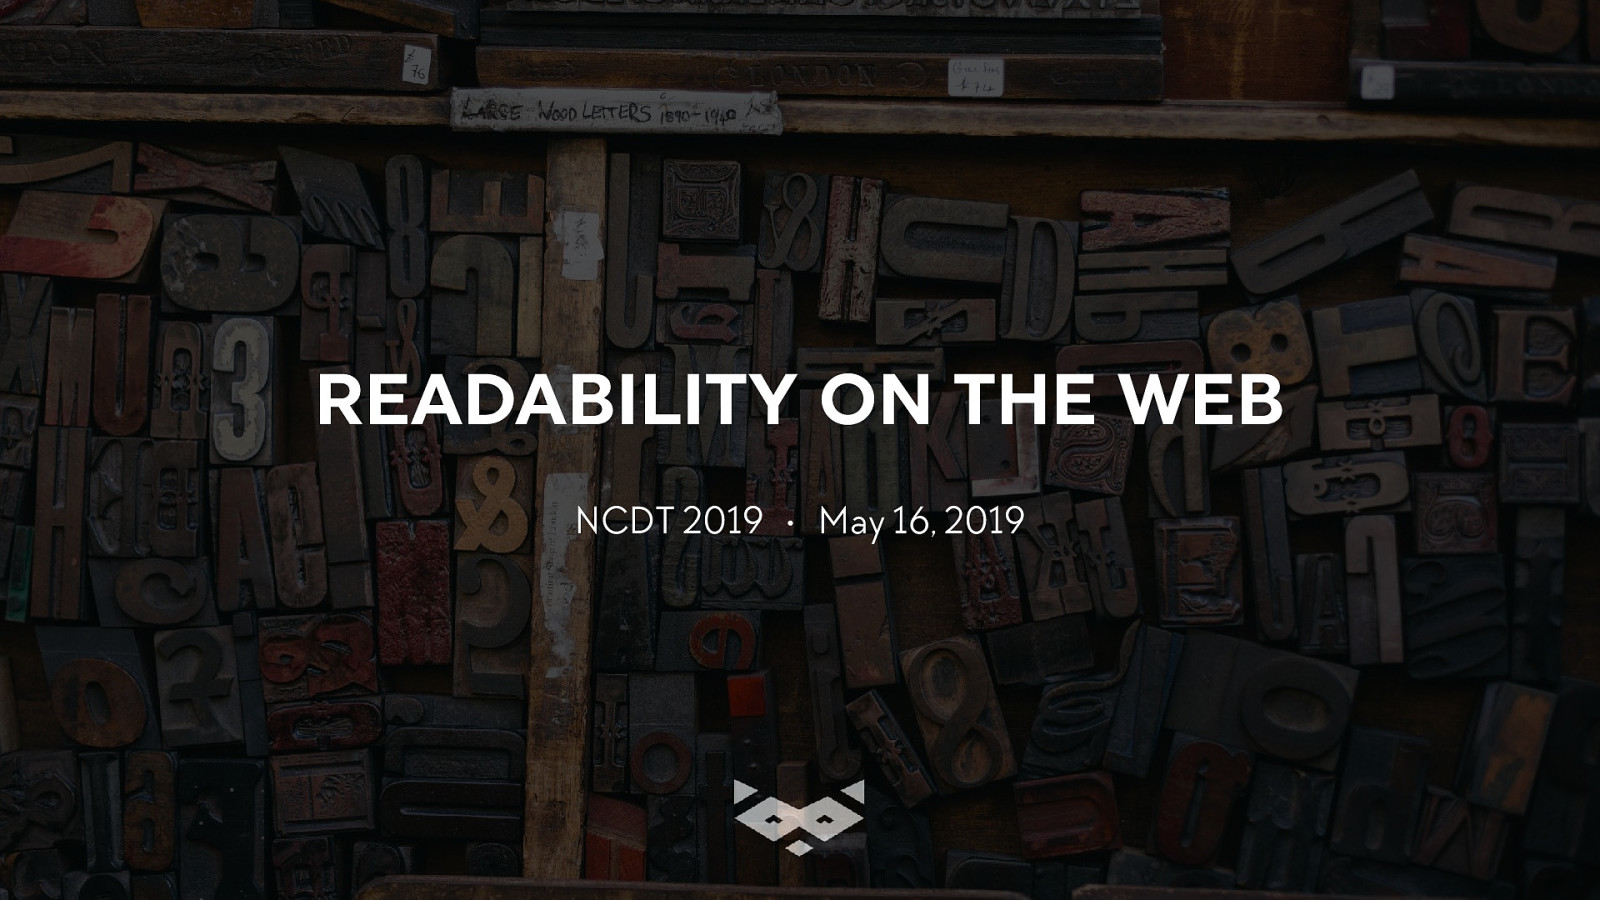 Readability on the Web